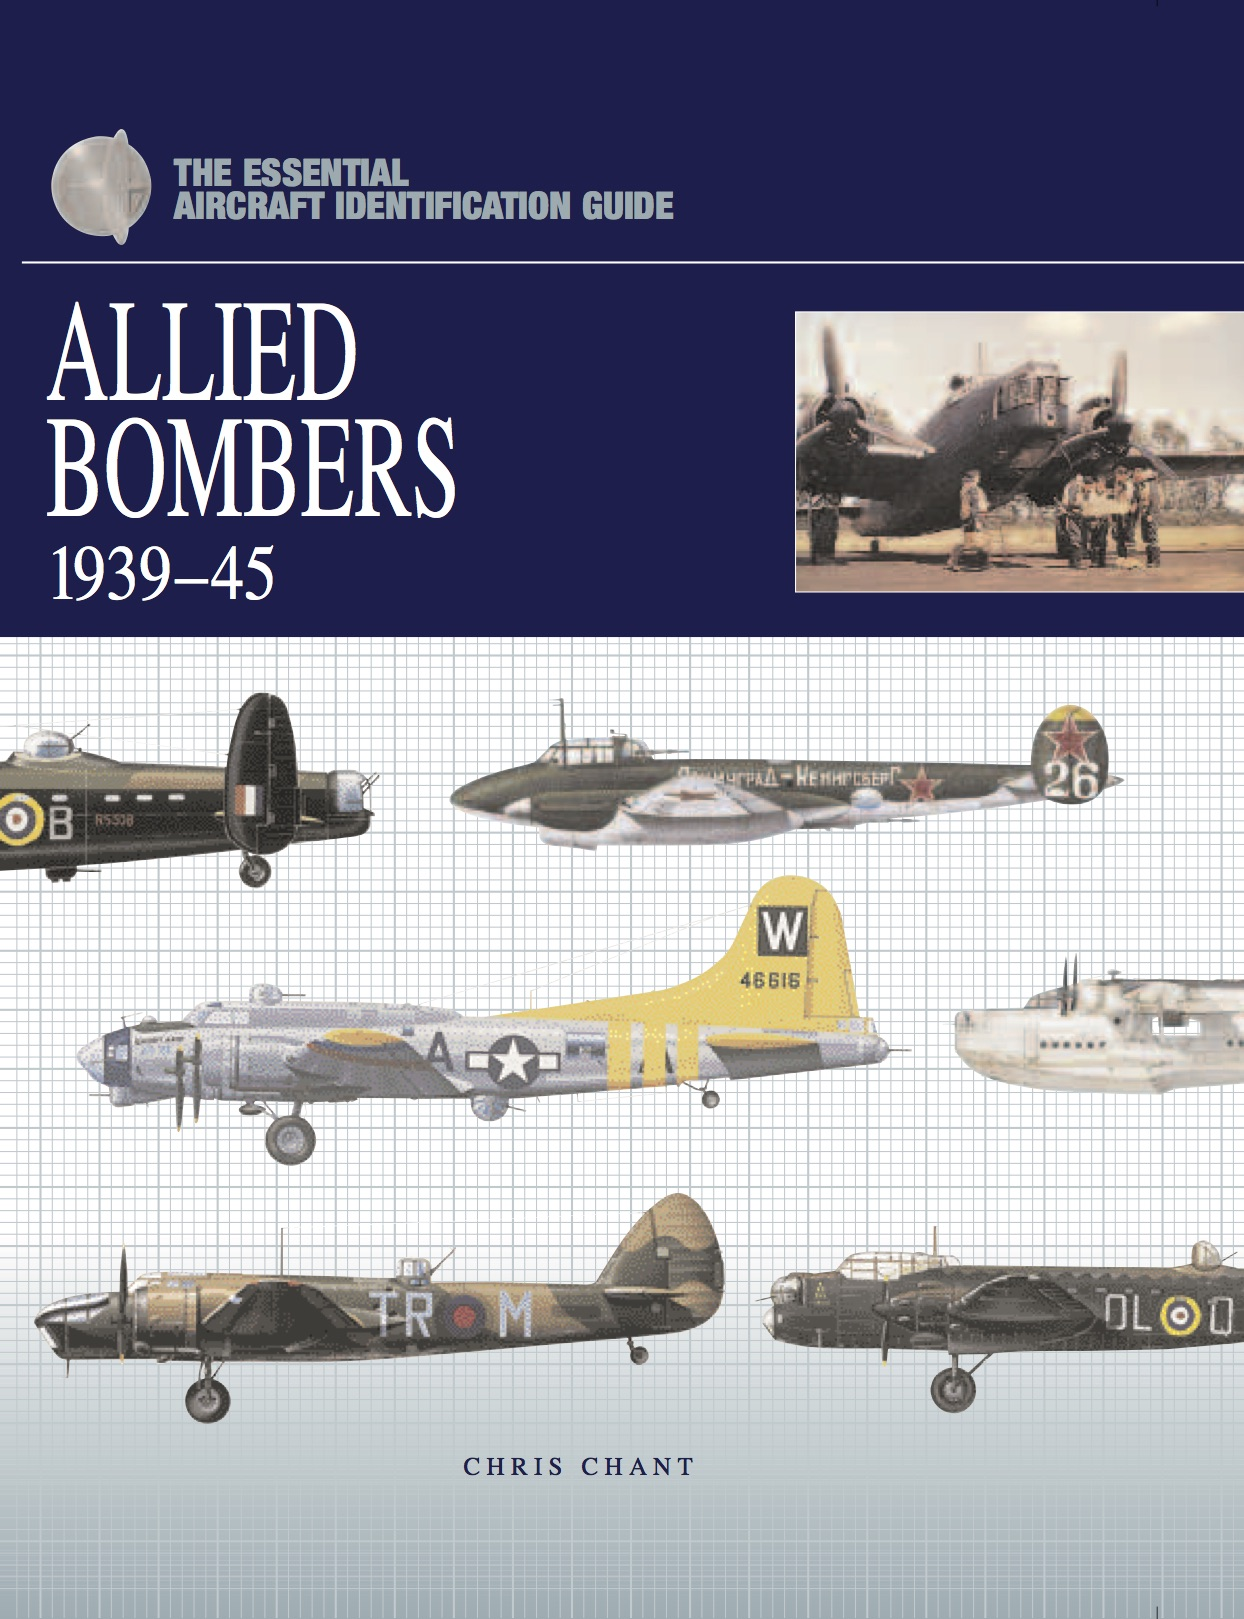 The Essential Aircraft Identification Guide: Allied Bombers 1939-45